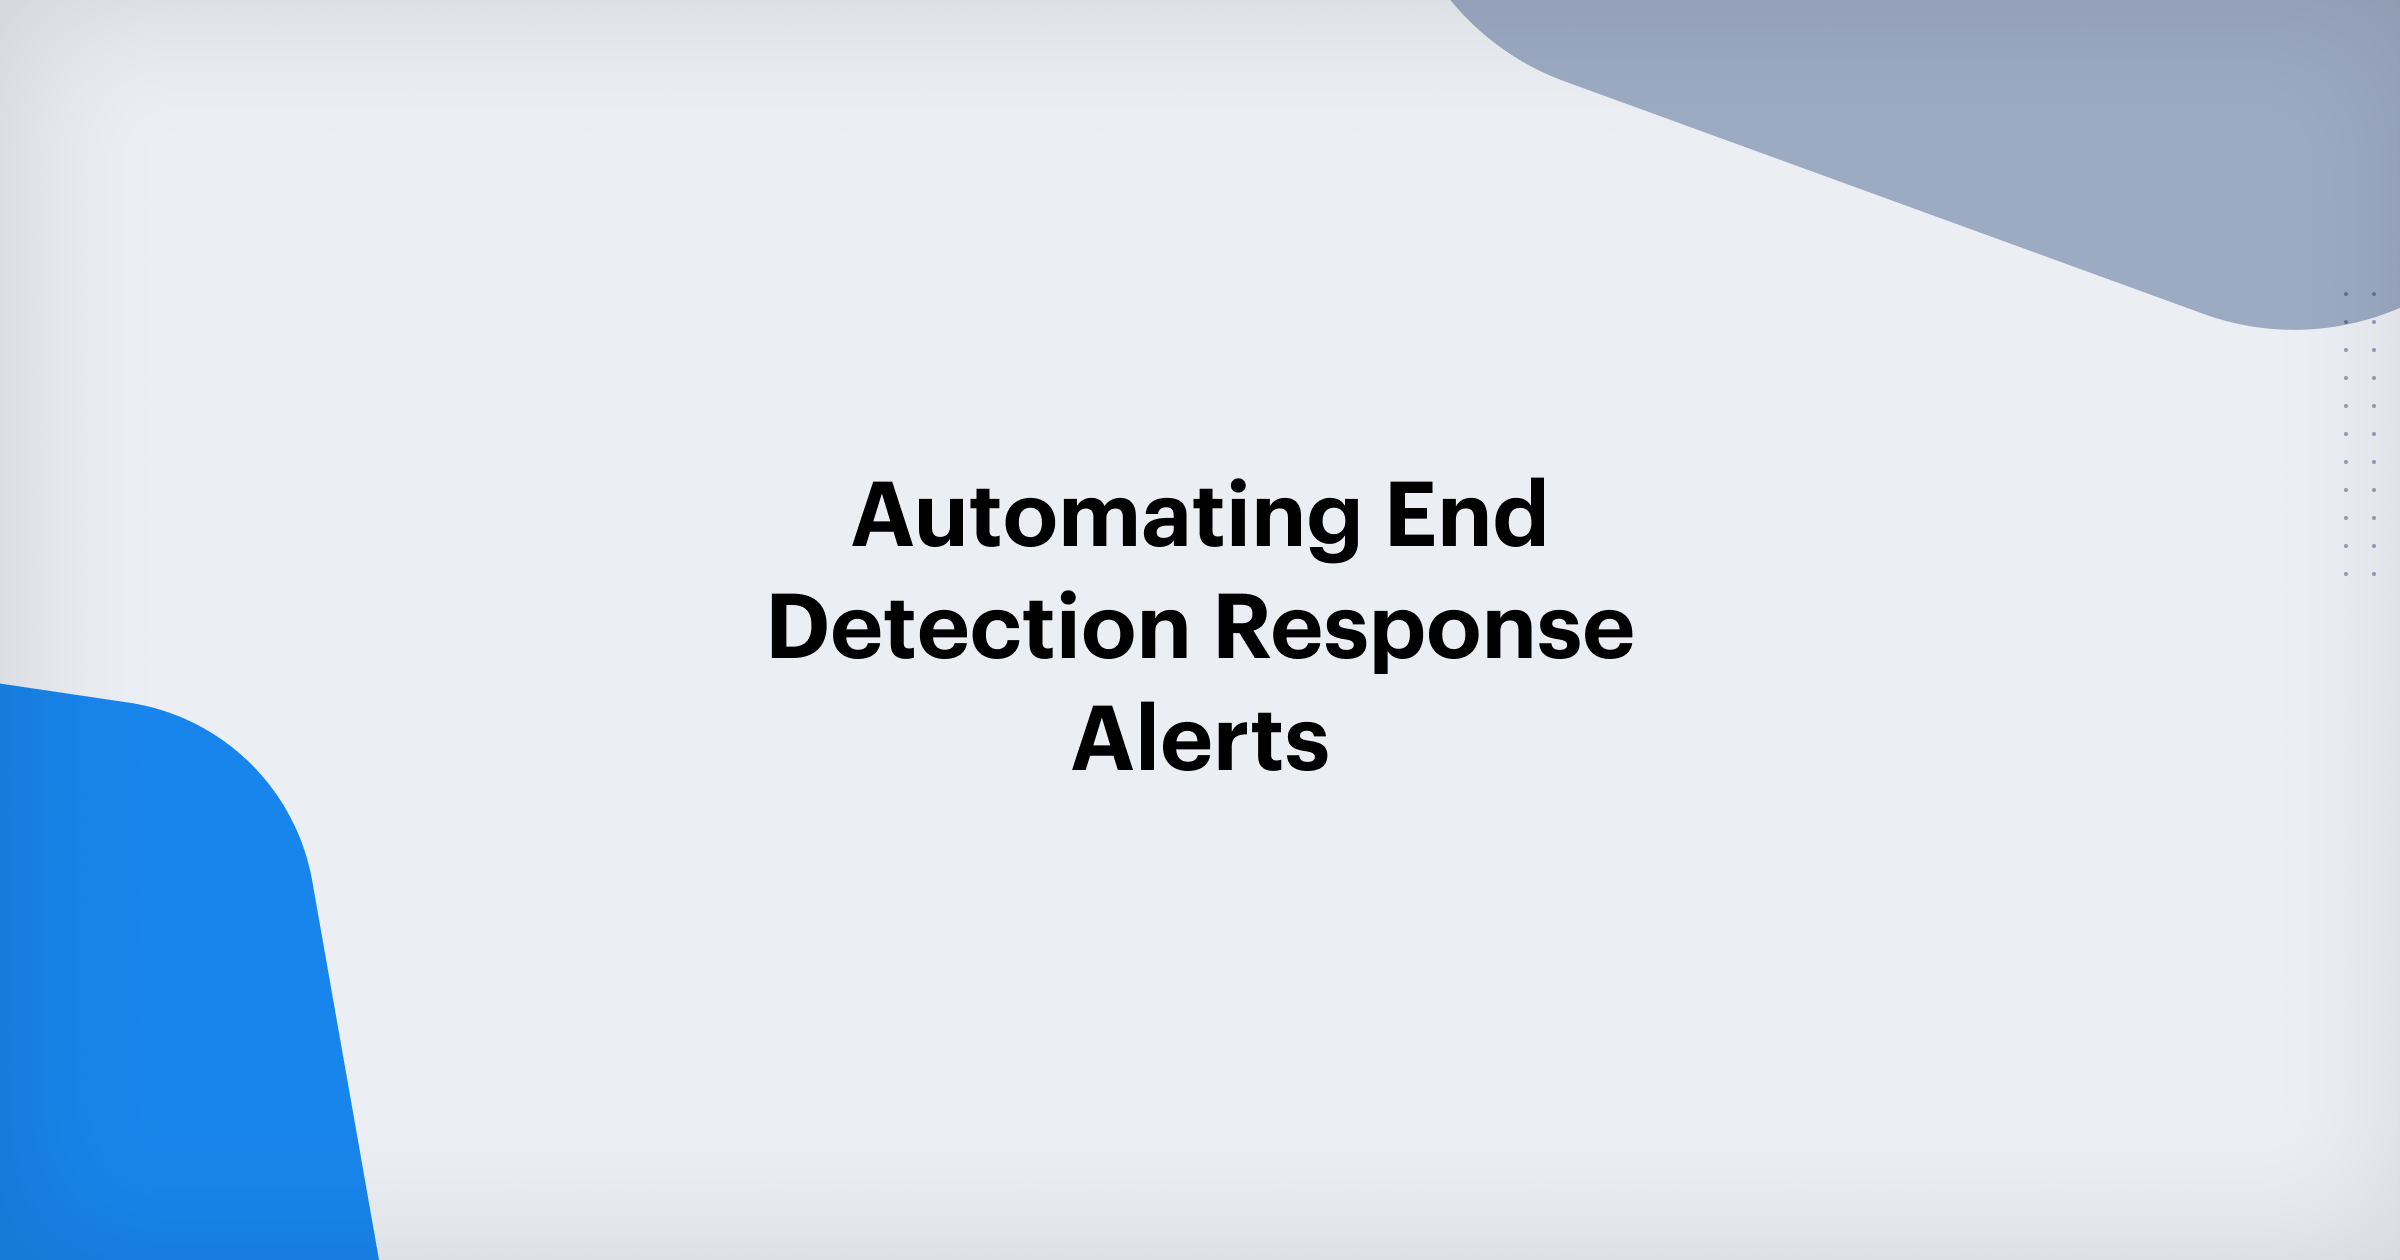 Automating End Detection Response Alerts